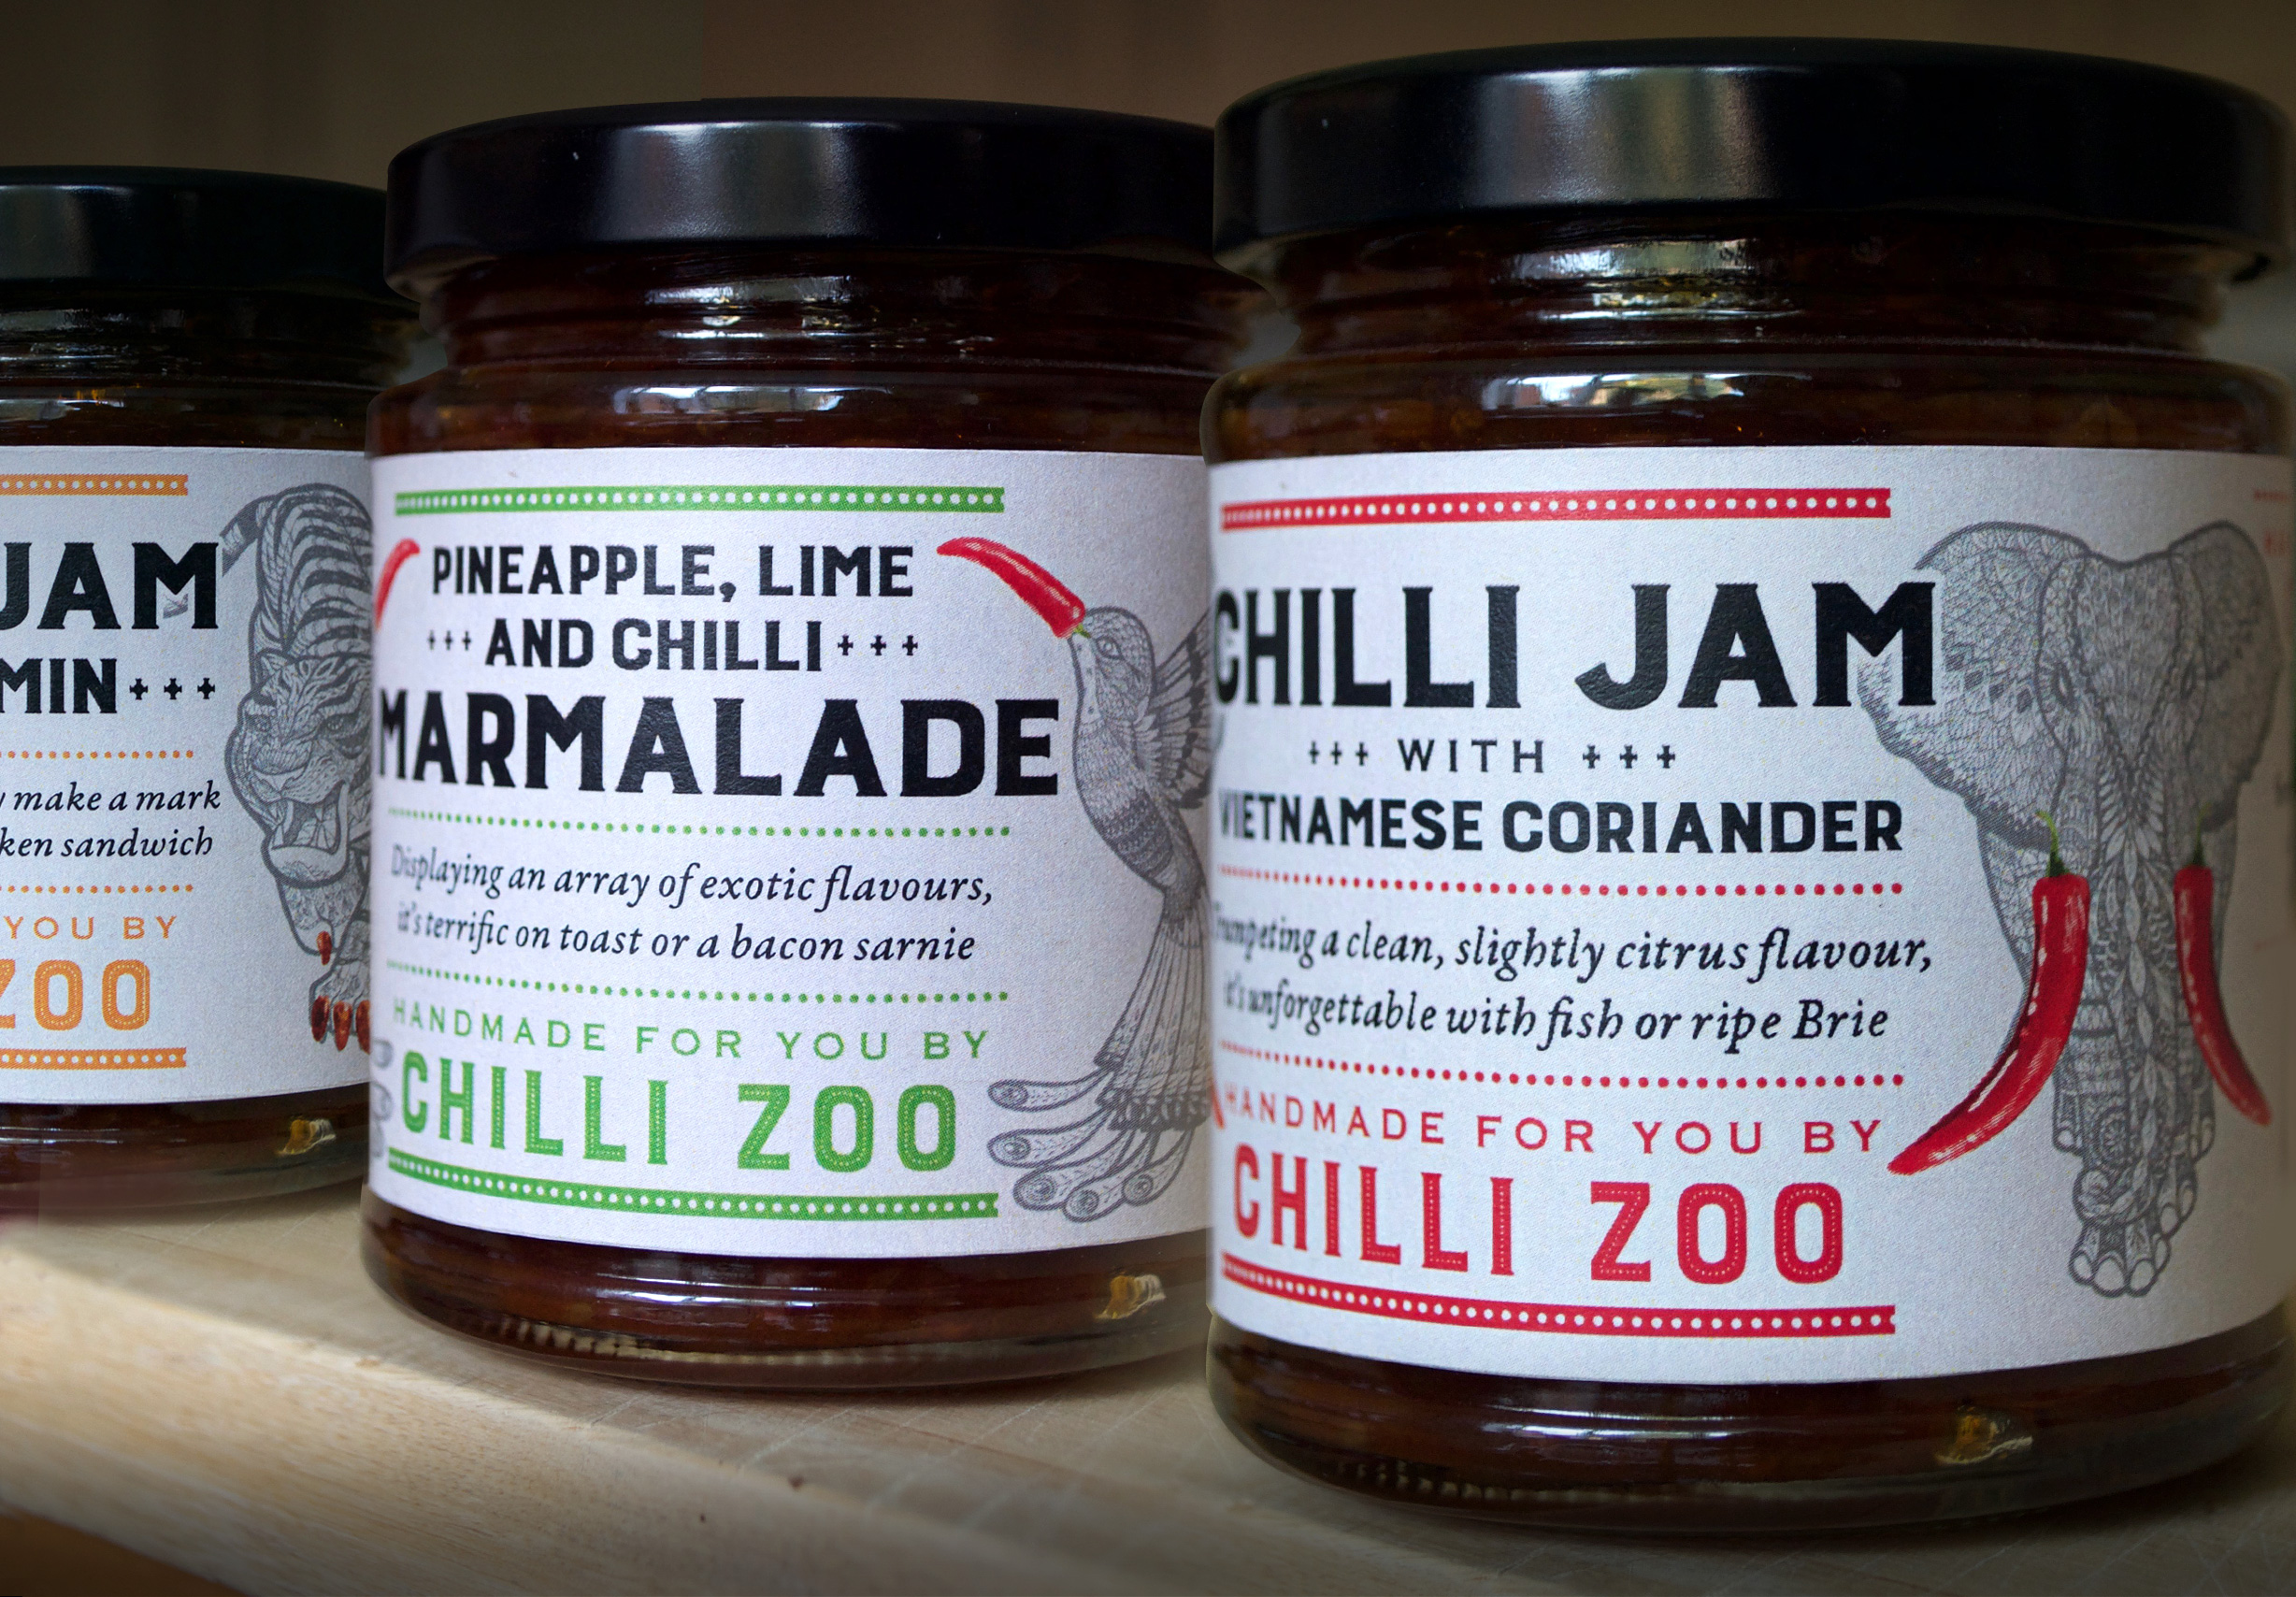 Chilli Zoo branding and labelling